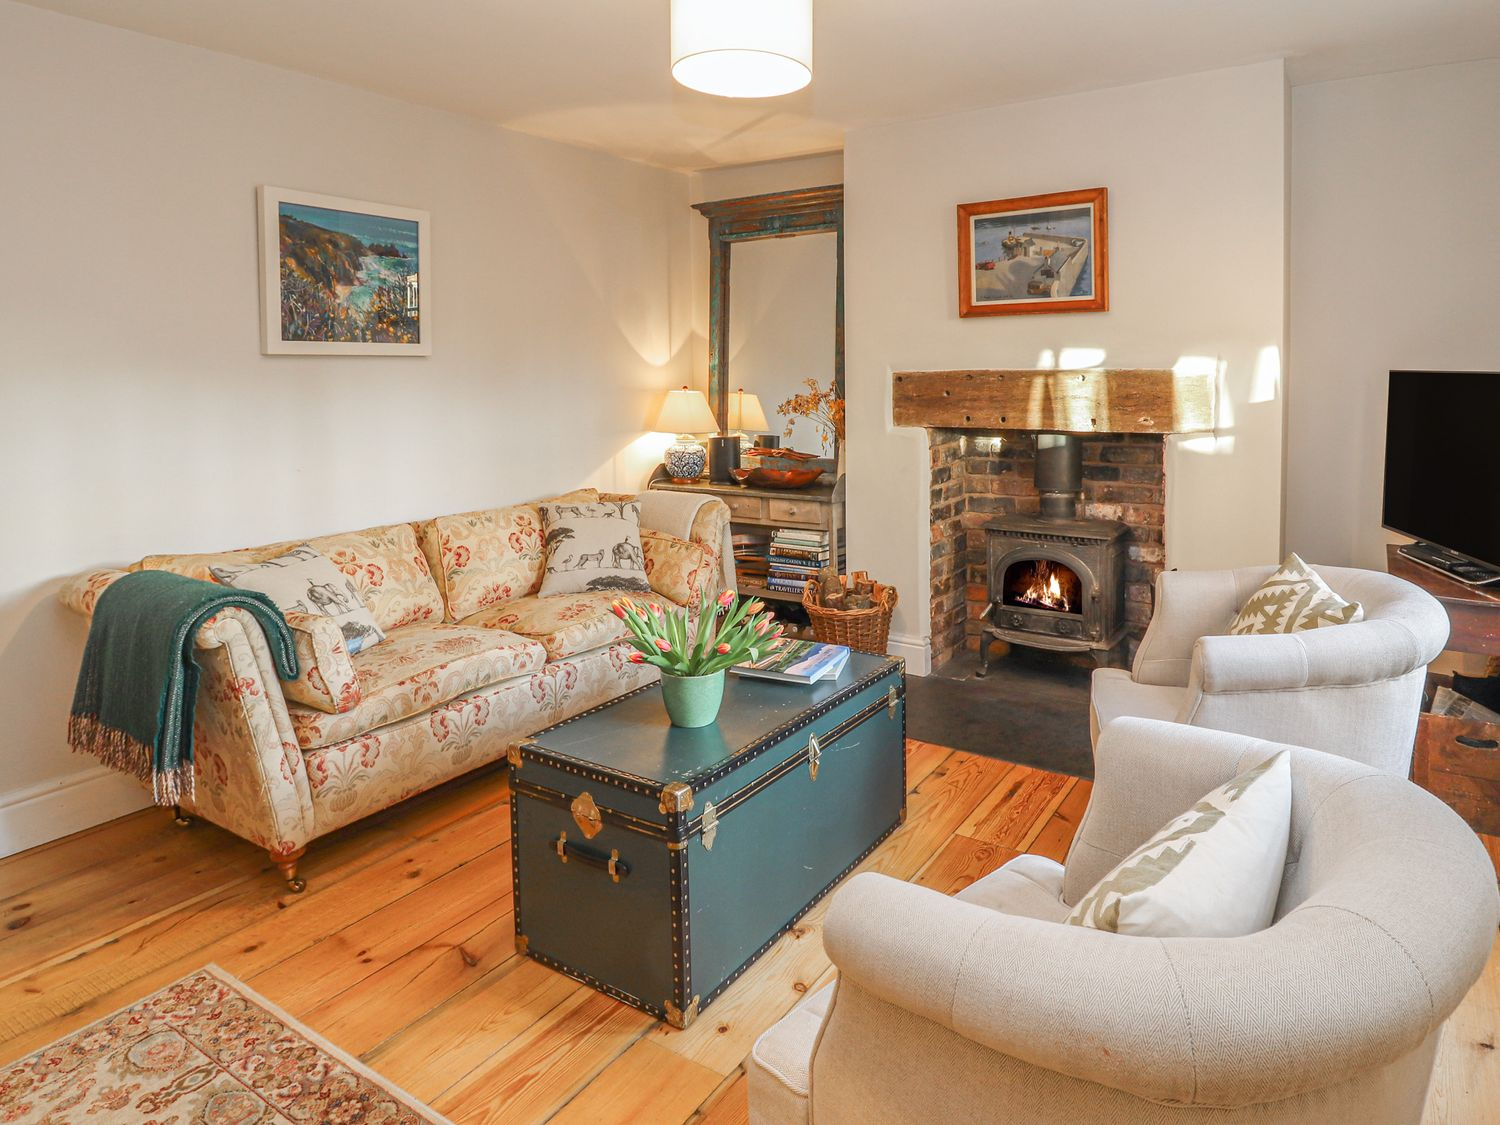 2 Ashby Place in Chester - sleeps 4 people